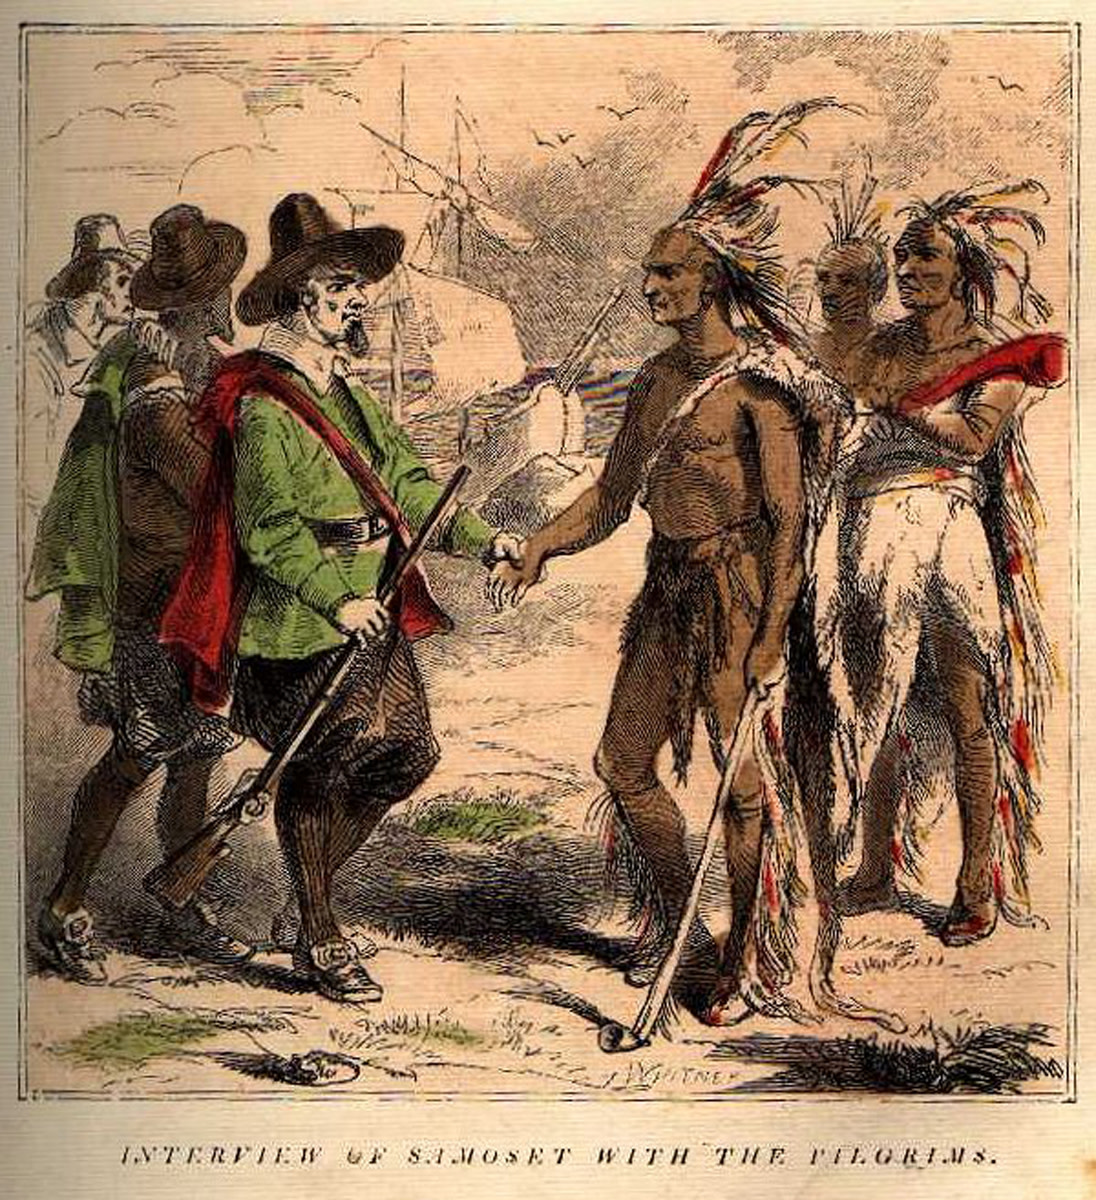 Artist Interpretation of Samoset Meeting the Pilgrims in 1622